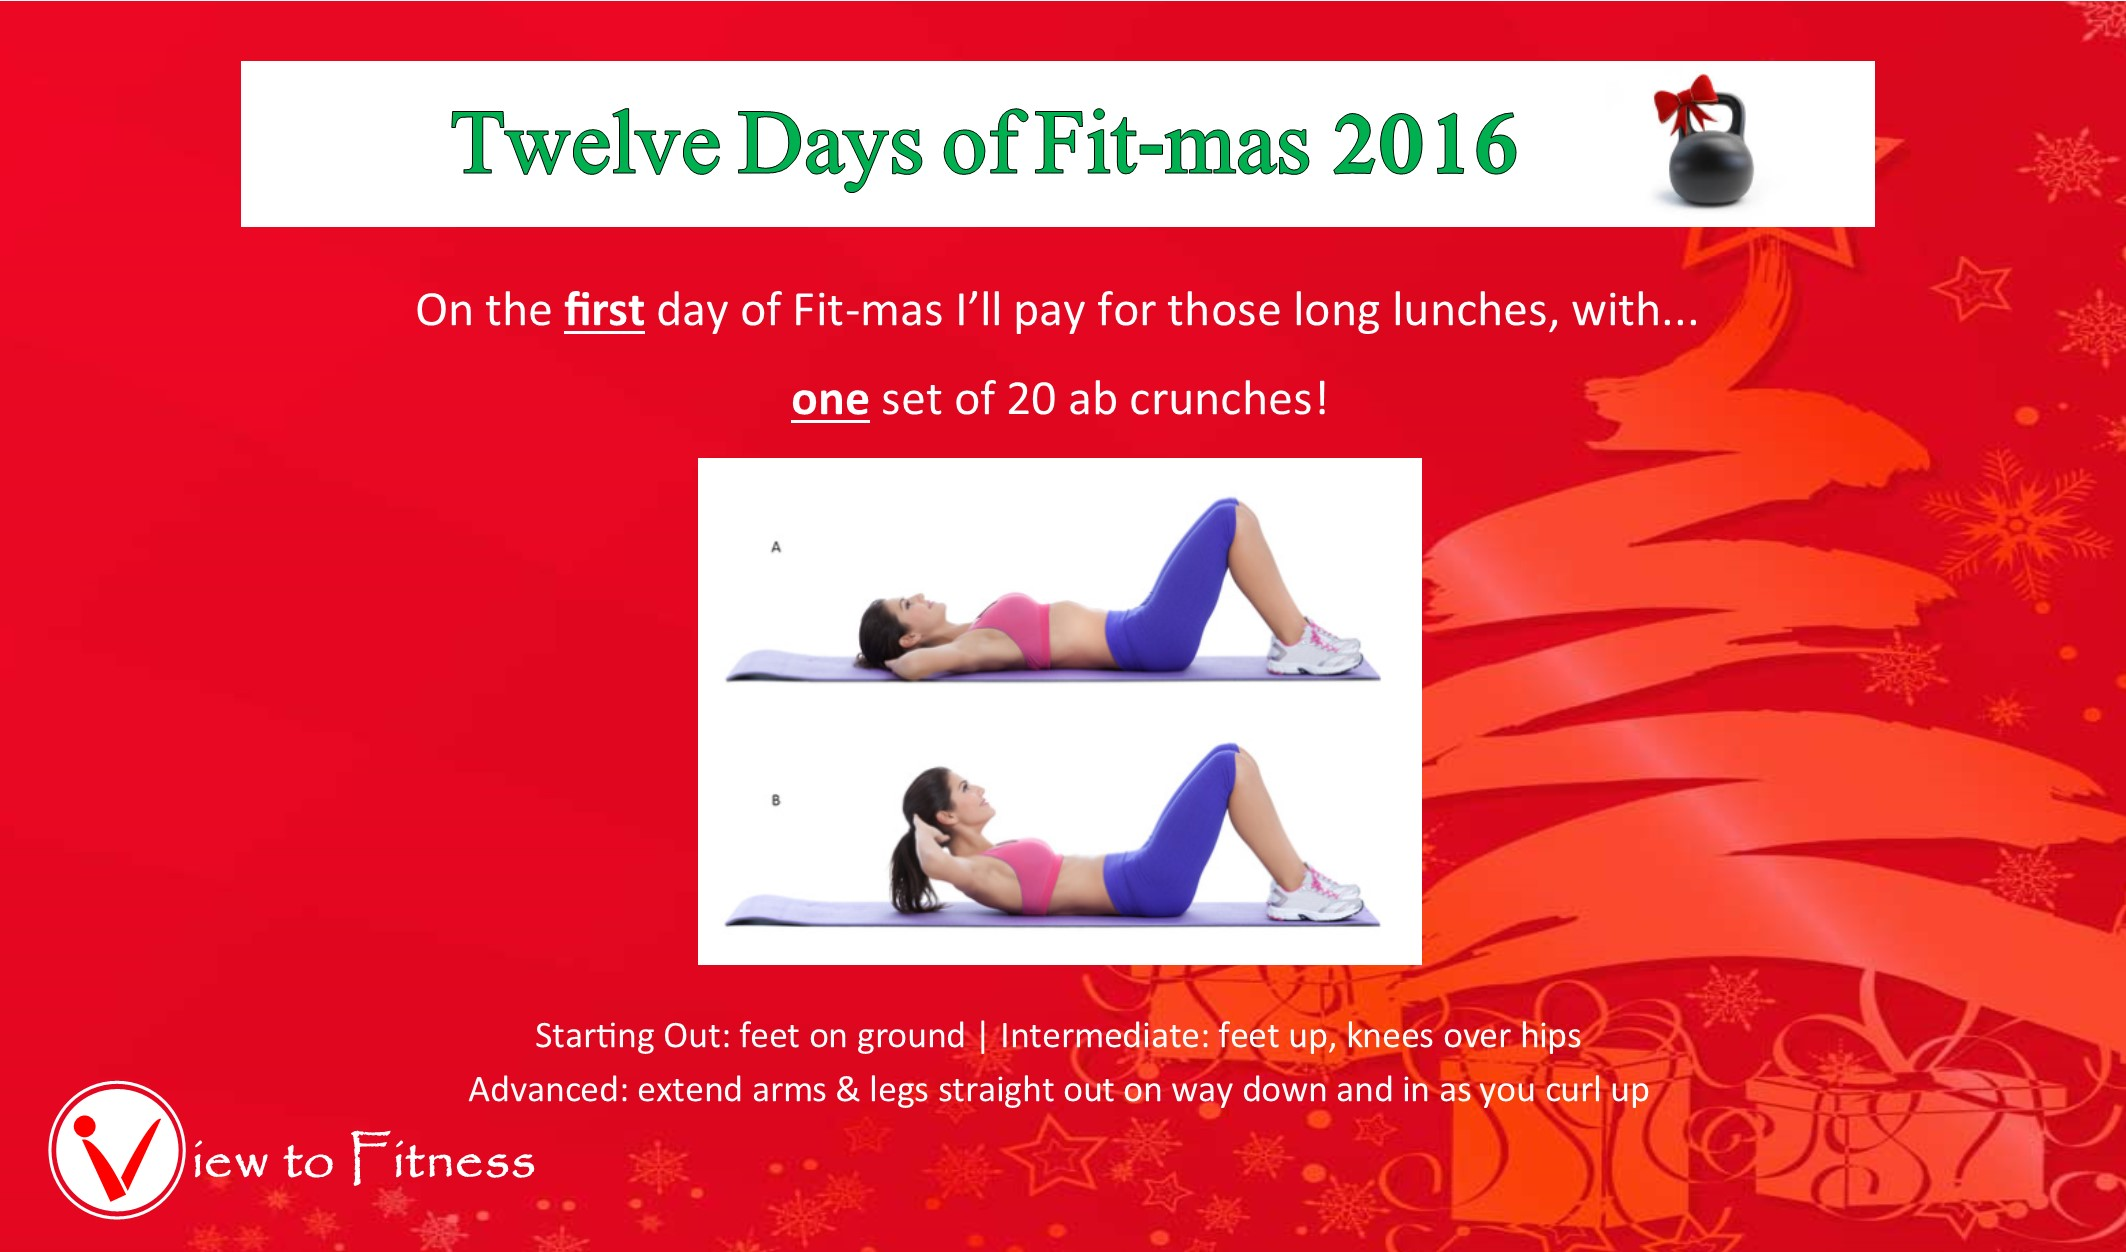 12 Days of Fit-mas 2016